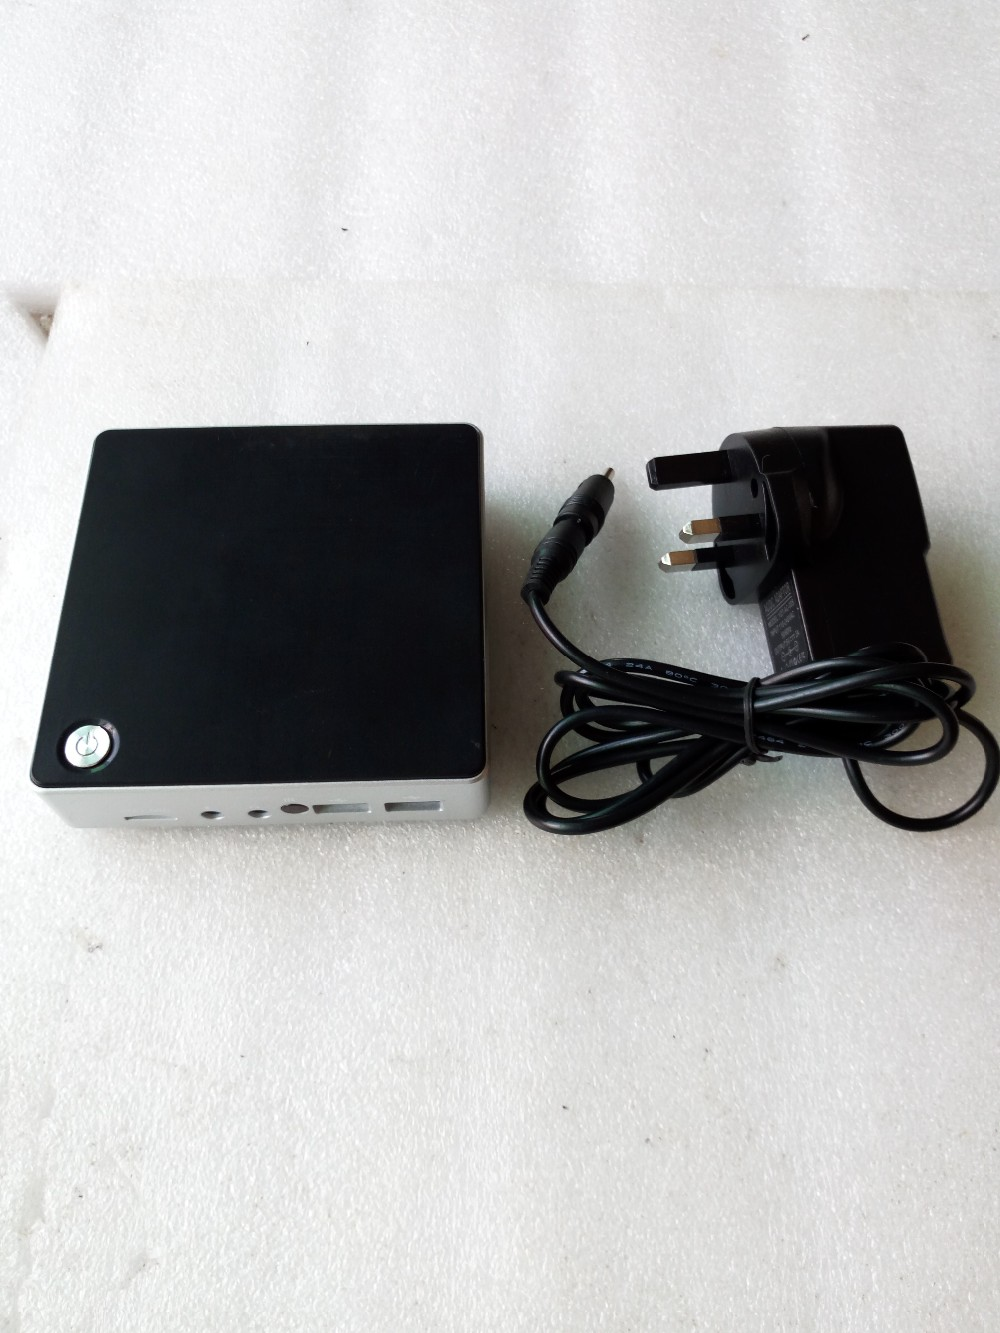 Fanless mini 1.86 ghz 32g hard disk pc with 4g ram